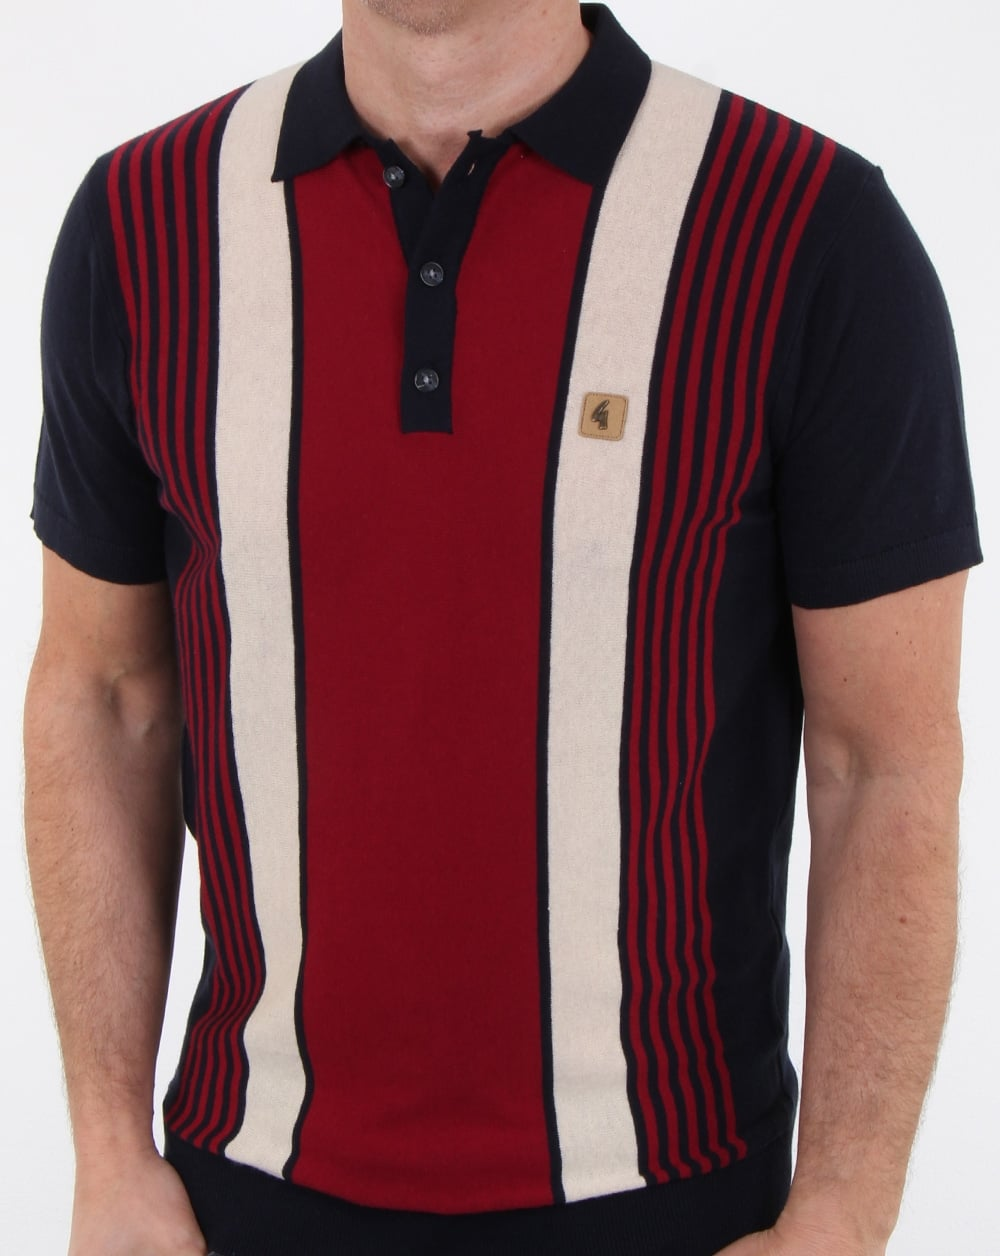 Gabicci Vintage Searle Polo Shirt